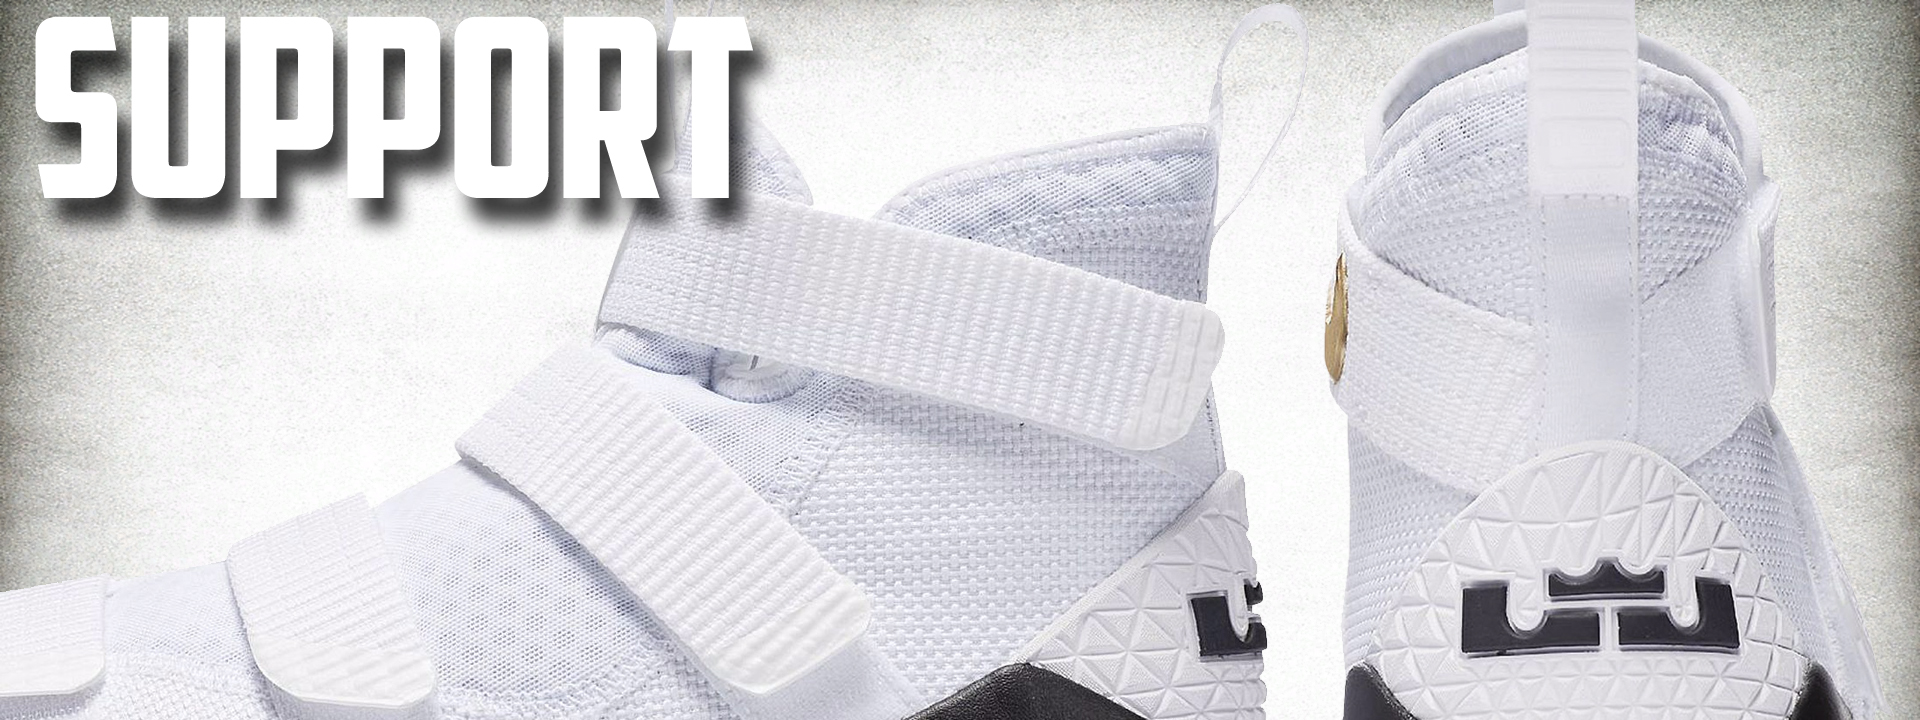 Nike LeBron Soldier 11 Performance Review support